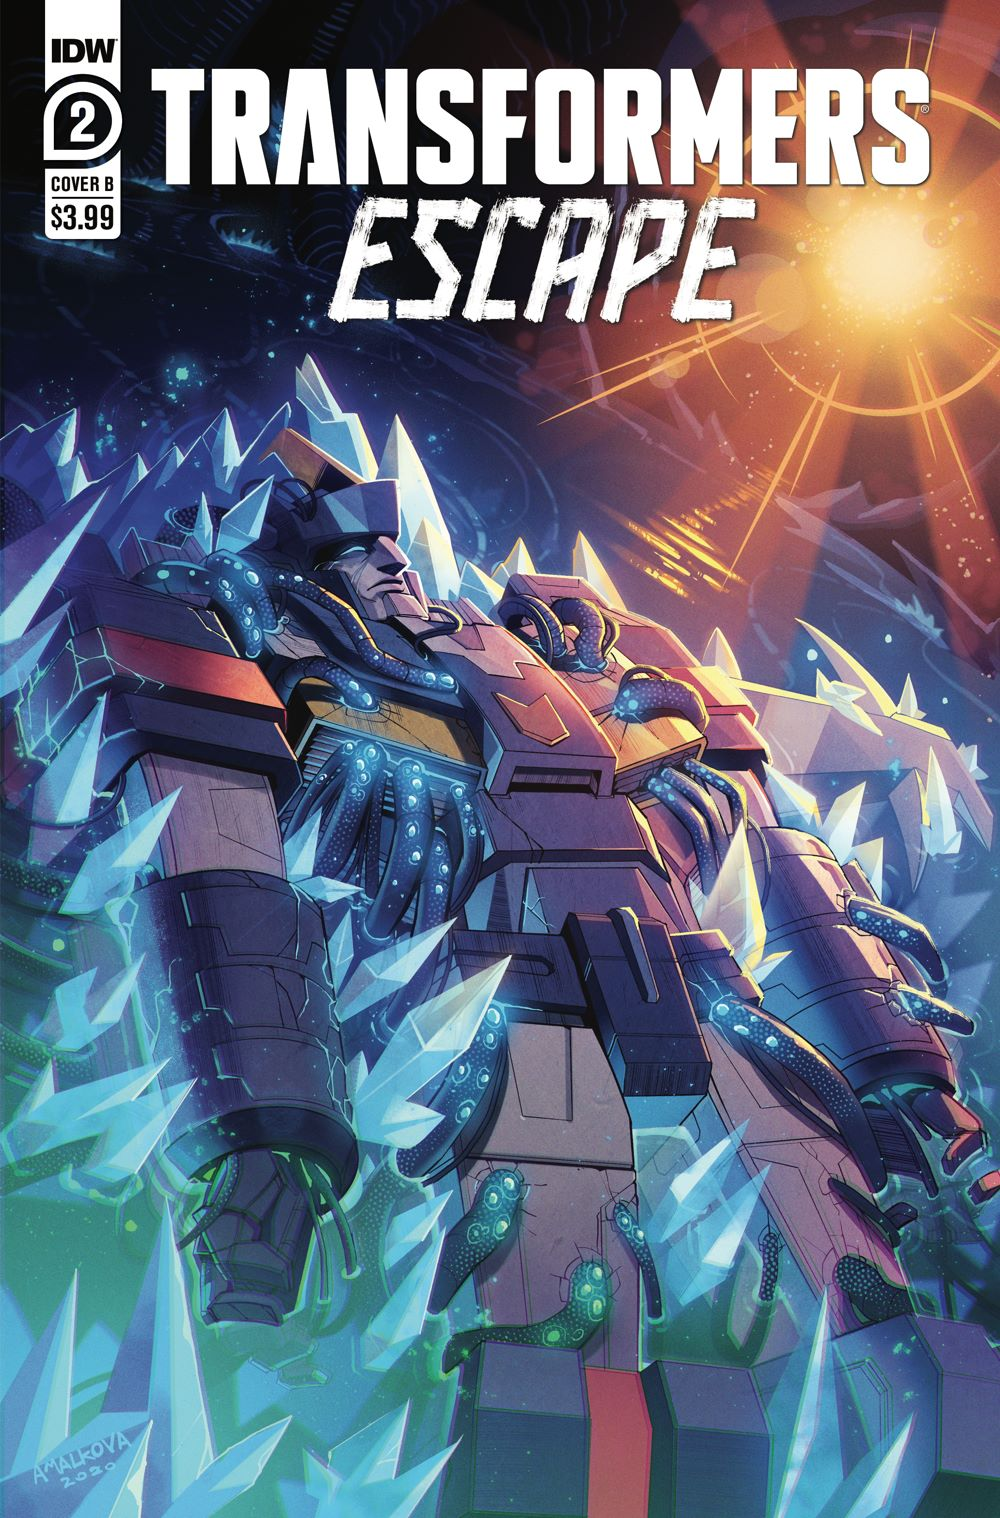 TFEscape02-Cover-B ComicList: IDW Publishing New Releases for 02/10/2021